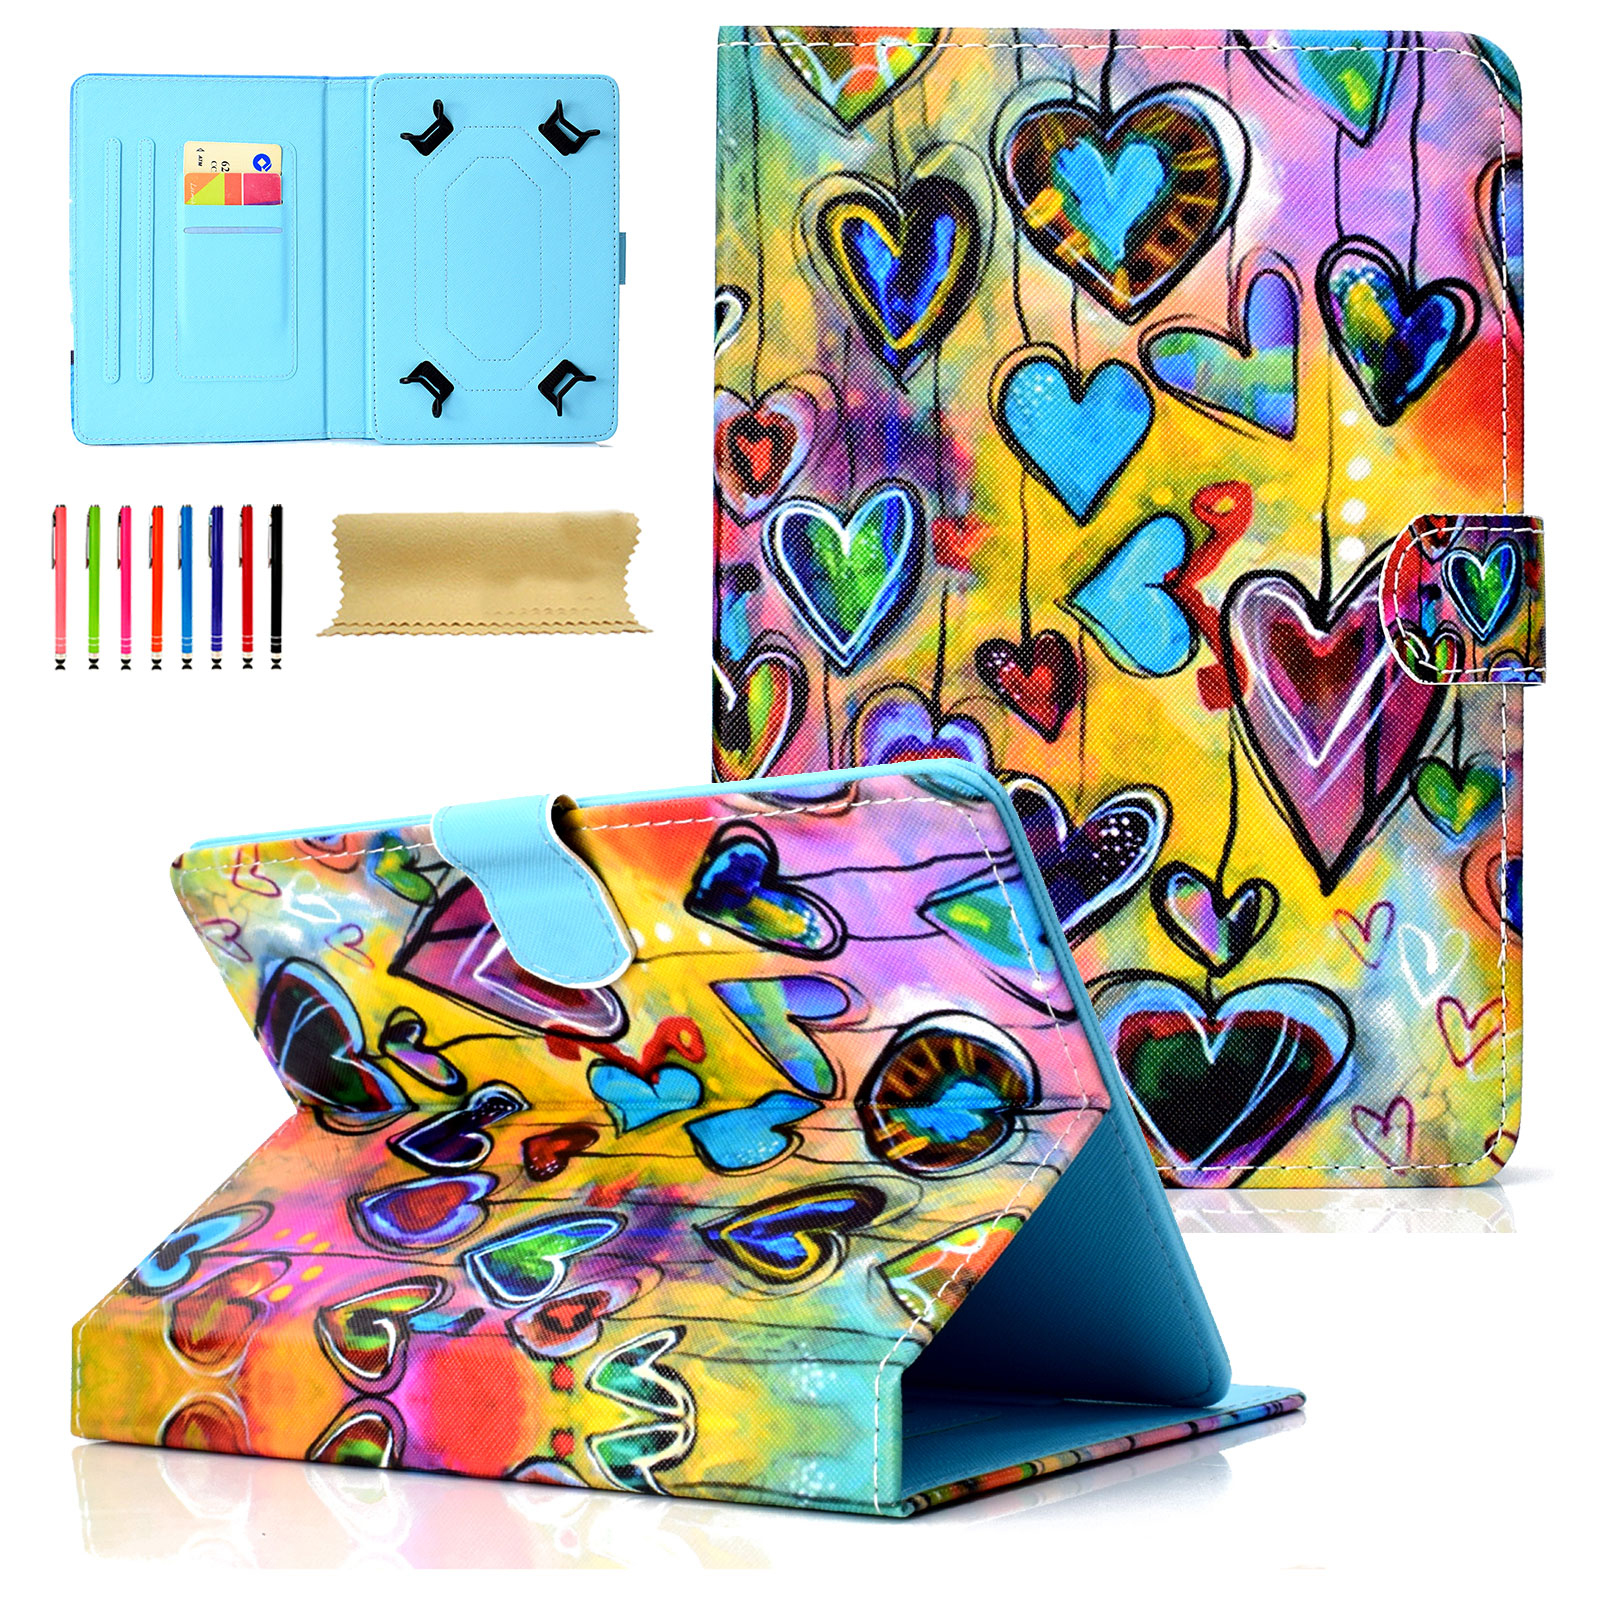 """Goodest Universal 8 Inch Tablet Case, Slim Fit Folio Protective Stand Wallet Cover for 7.5-8.5"""" Tablet 8"""" Touchscreen/iPad Mini/Galaxy Tab A/Fire HD 8/RCA/Chrome Nextbook iView, Hearts"""